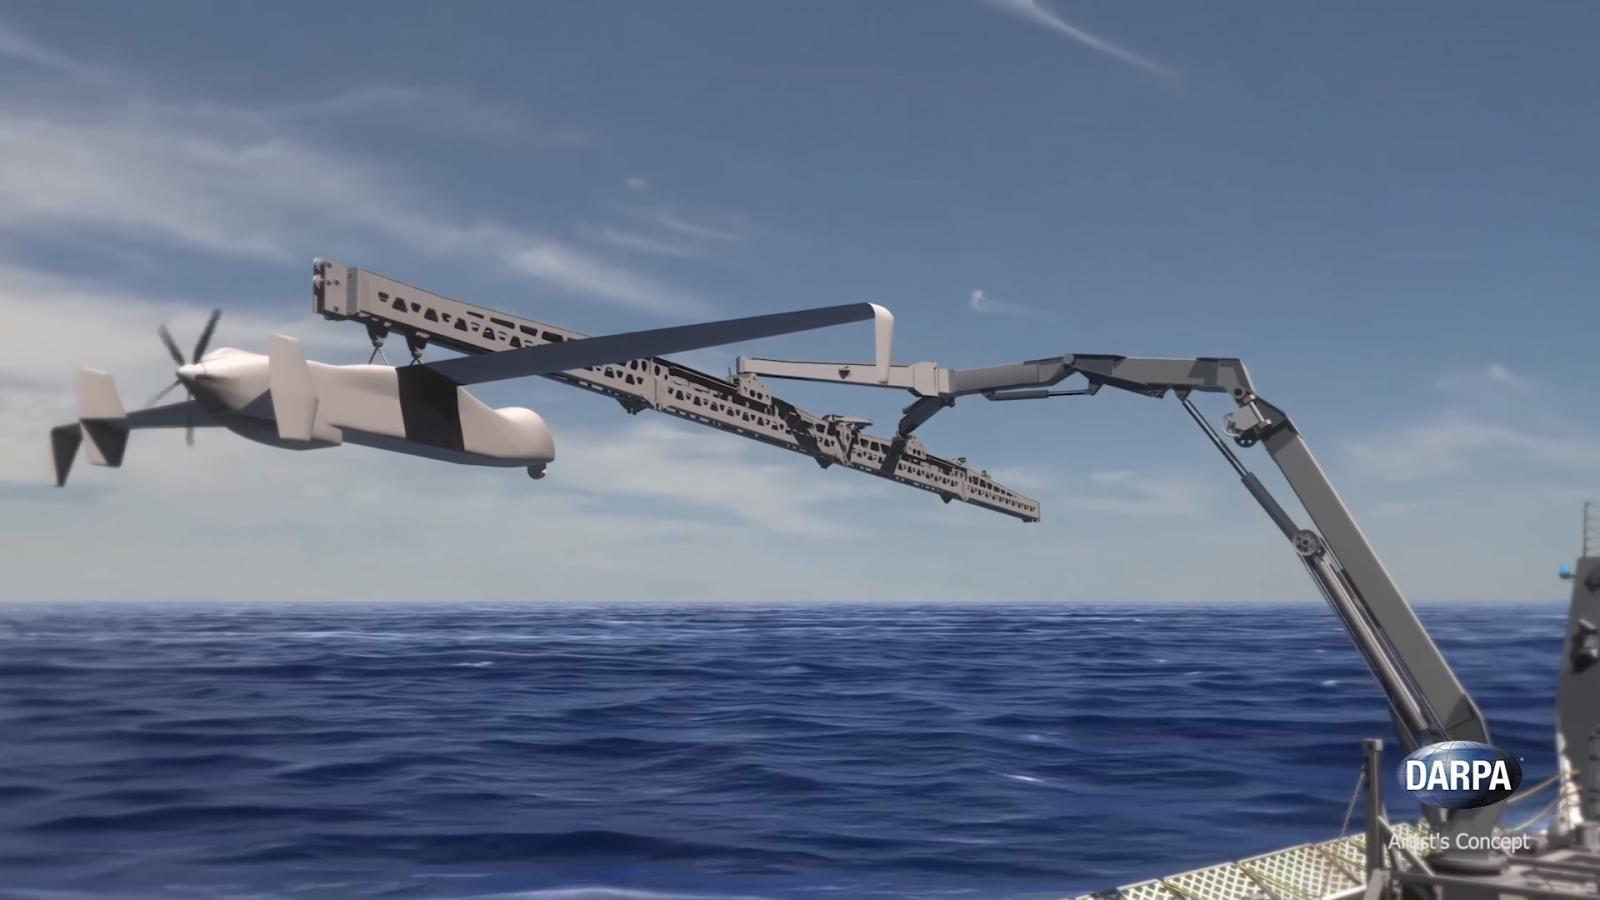 Darpa develops system to launch and retrieve large drones travelling at speed in midair